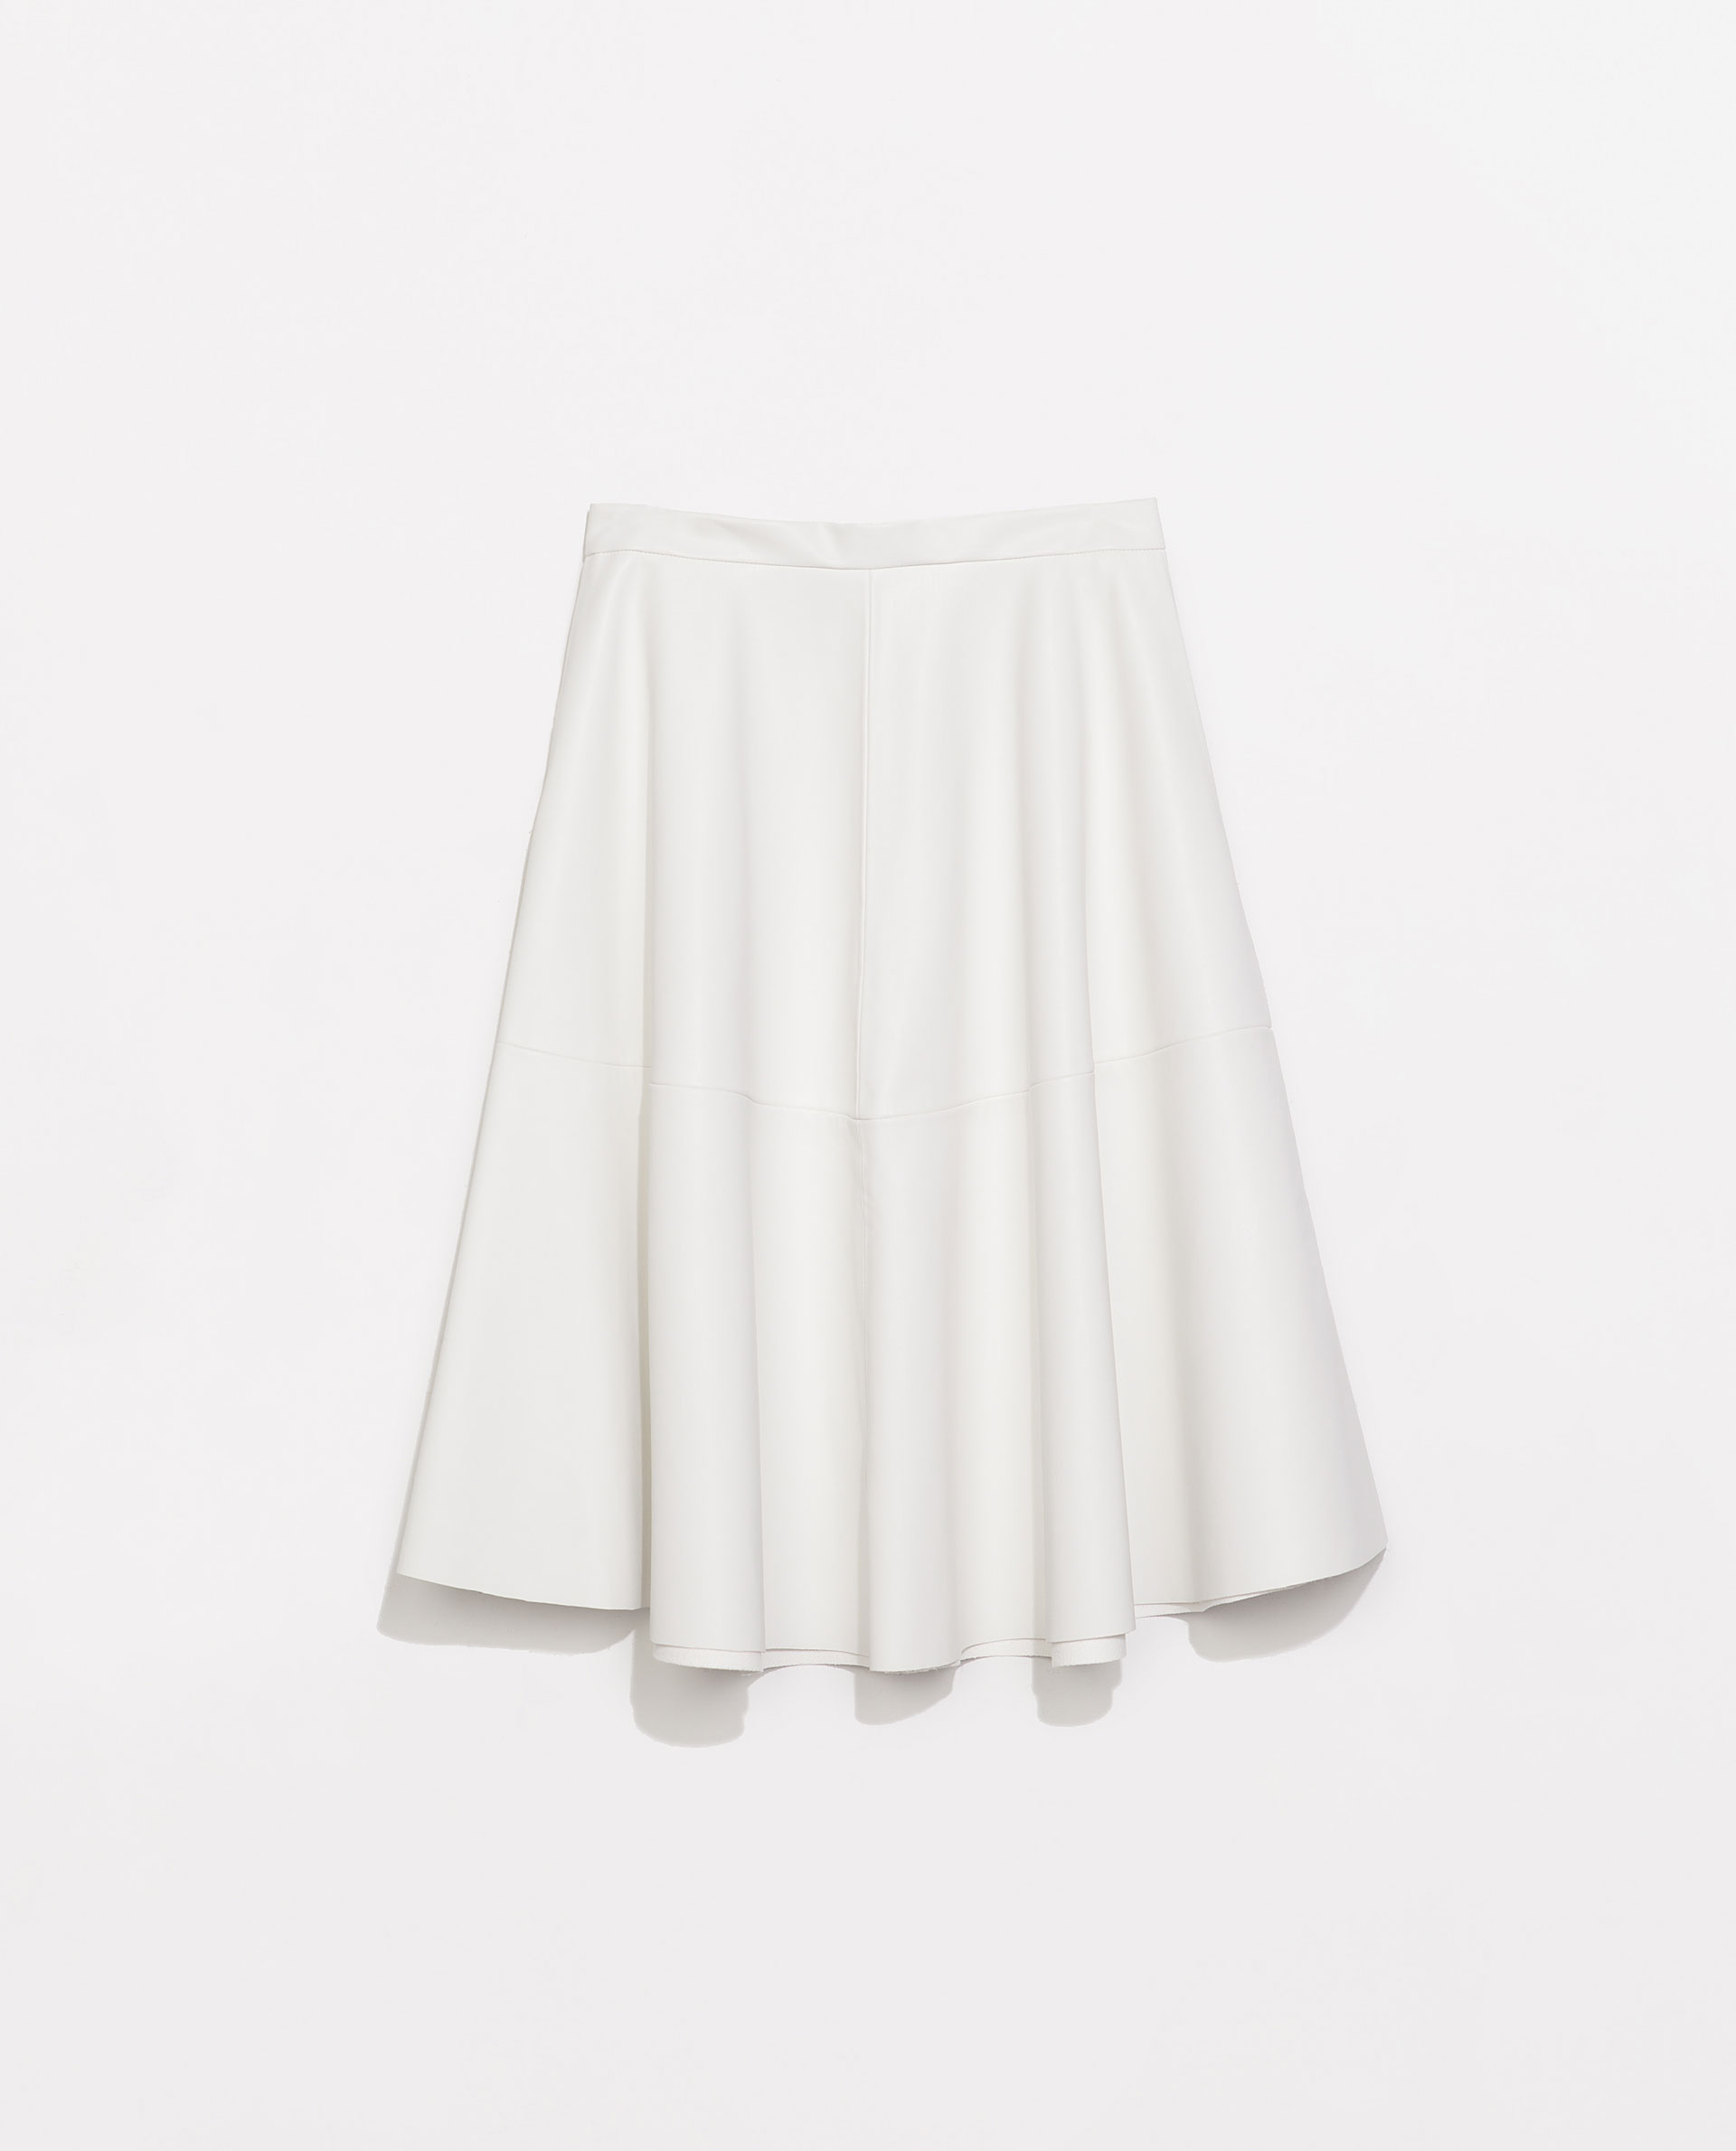 Zara Faux Leather Flared Skirt in White | Lyst